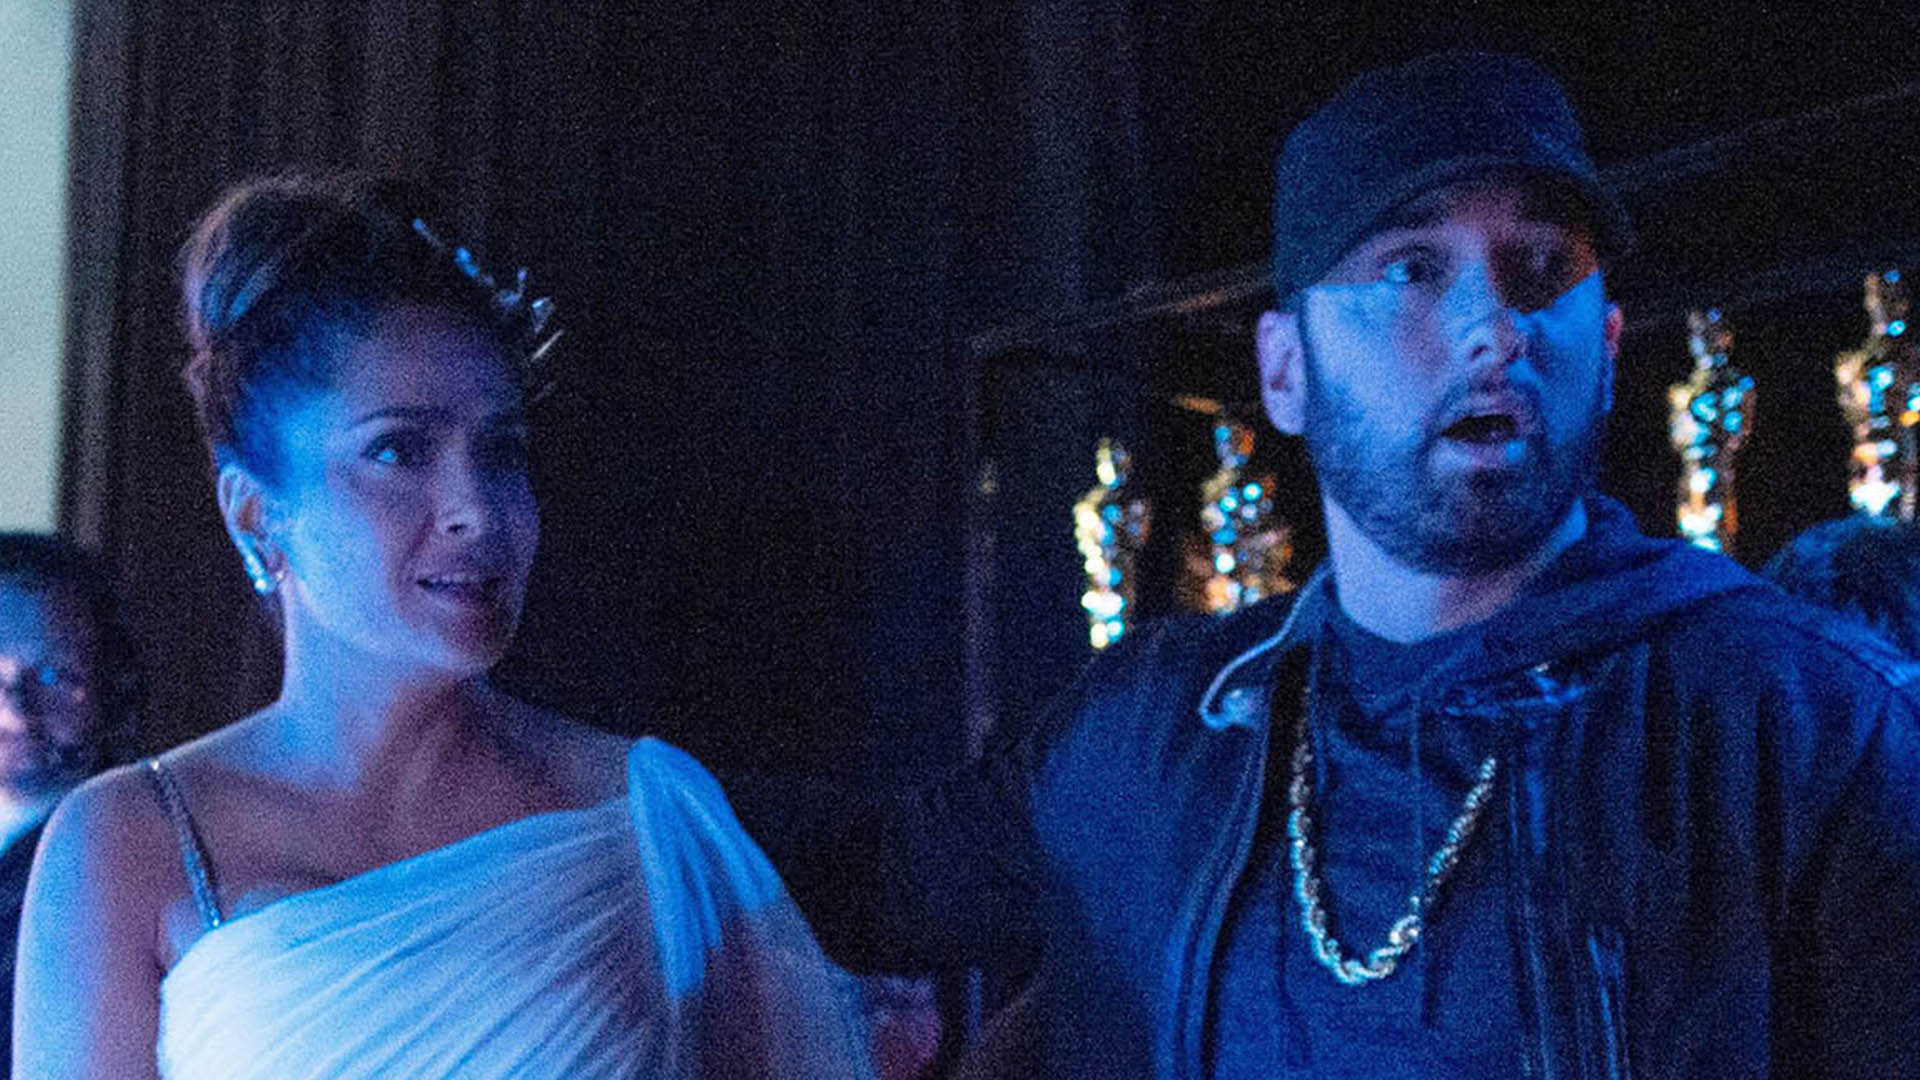 Read the story of Salma Hayek and Eminem meeting behind the scenes of Oscar ceremony!